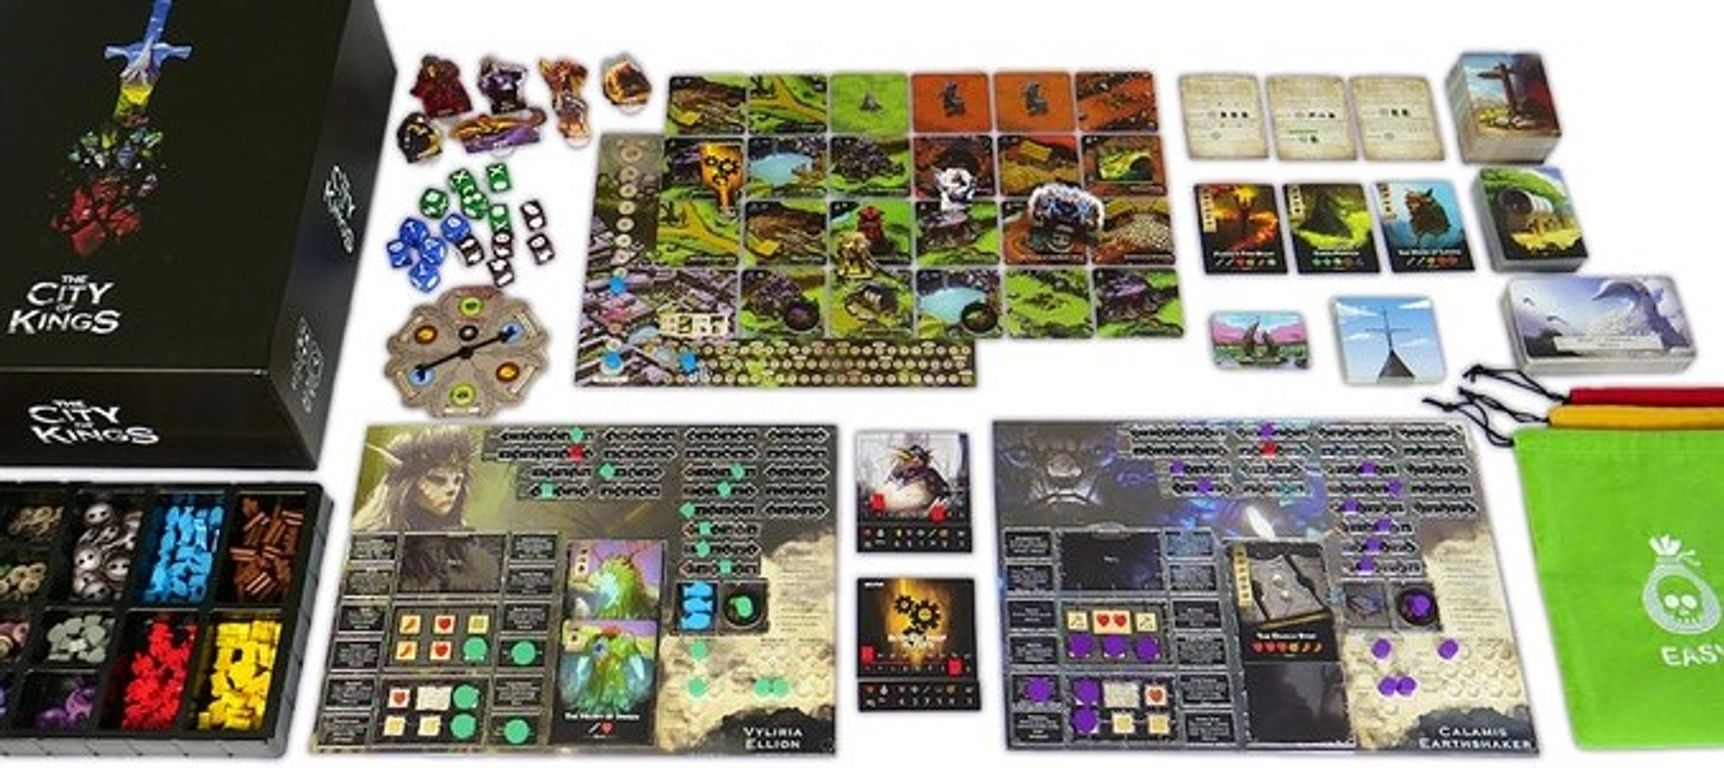 The City of Kings components